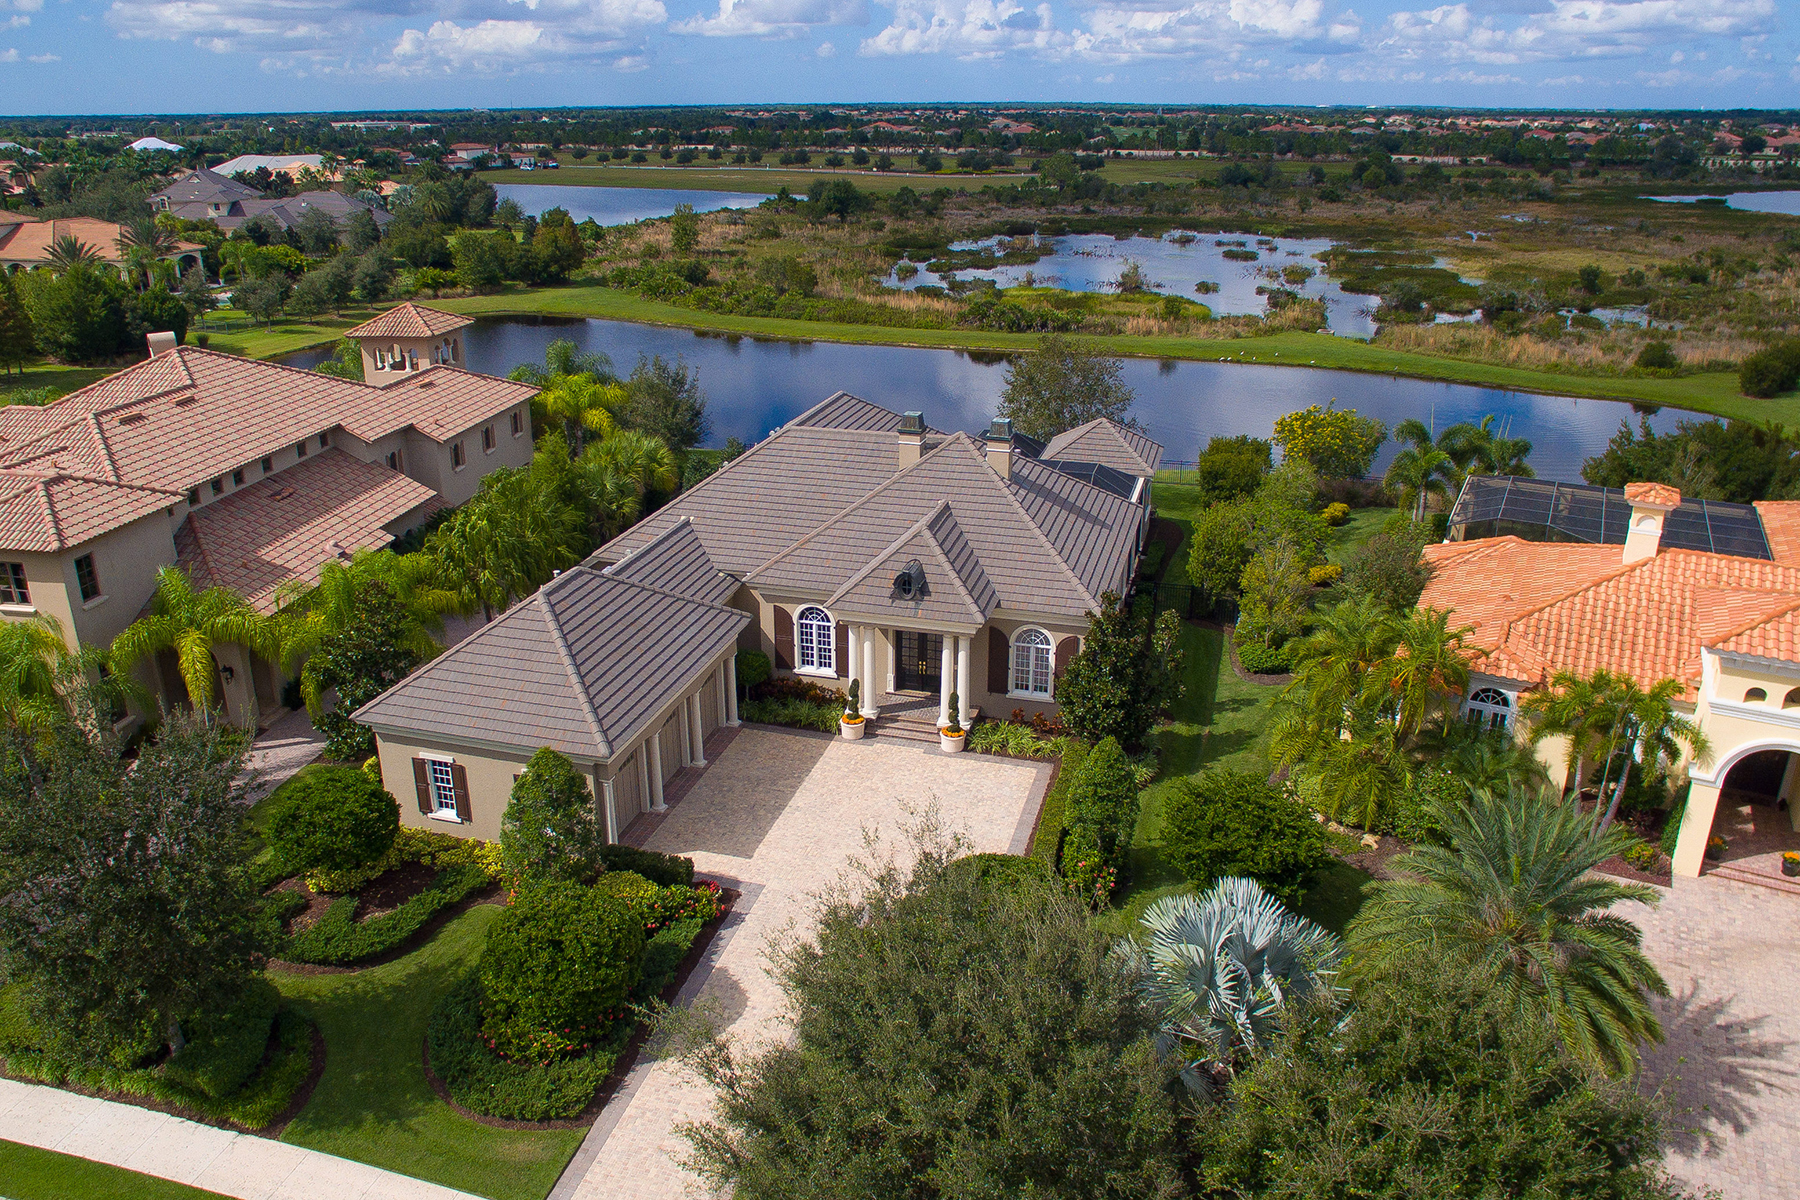 Maison unifamiliale pour l Vente à THE LAKE CLUB 15815 Clearlake Ave Lakewood Ranch, Florida 34202 États-Unis